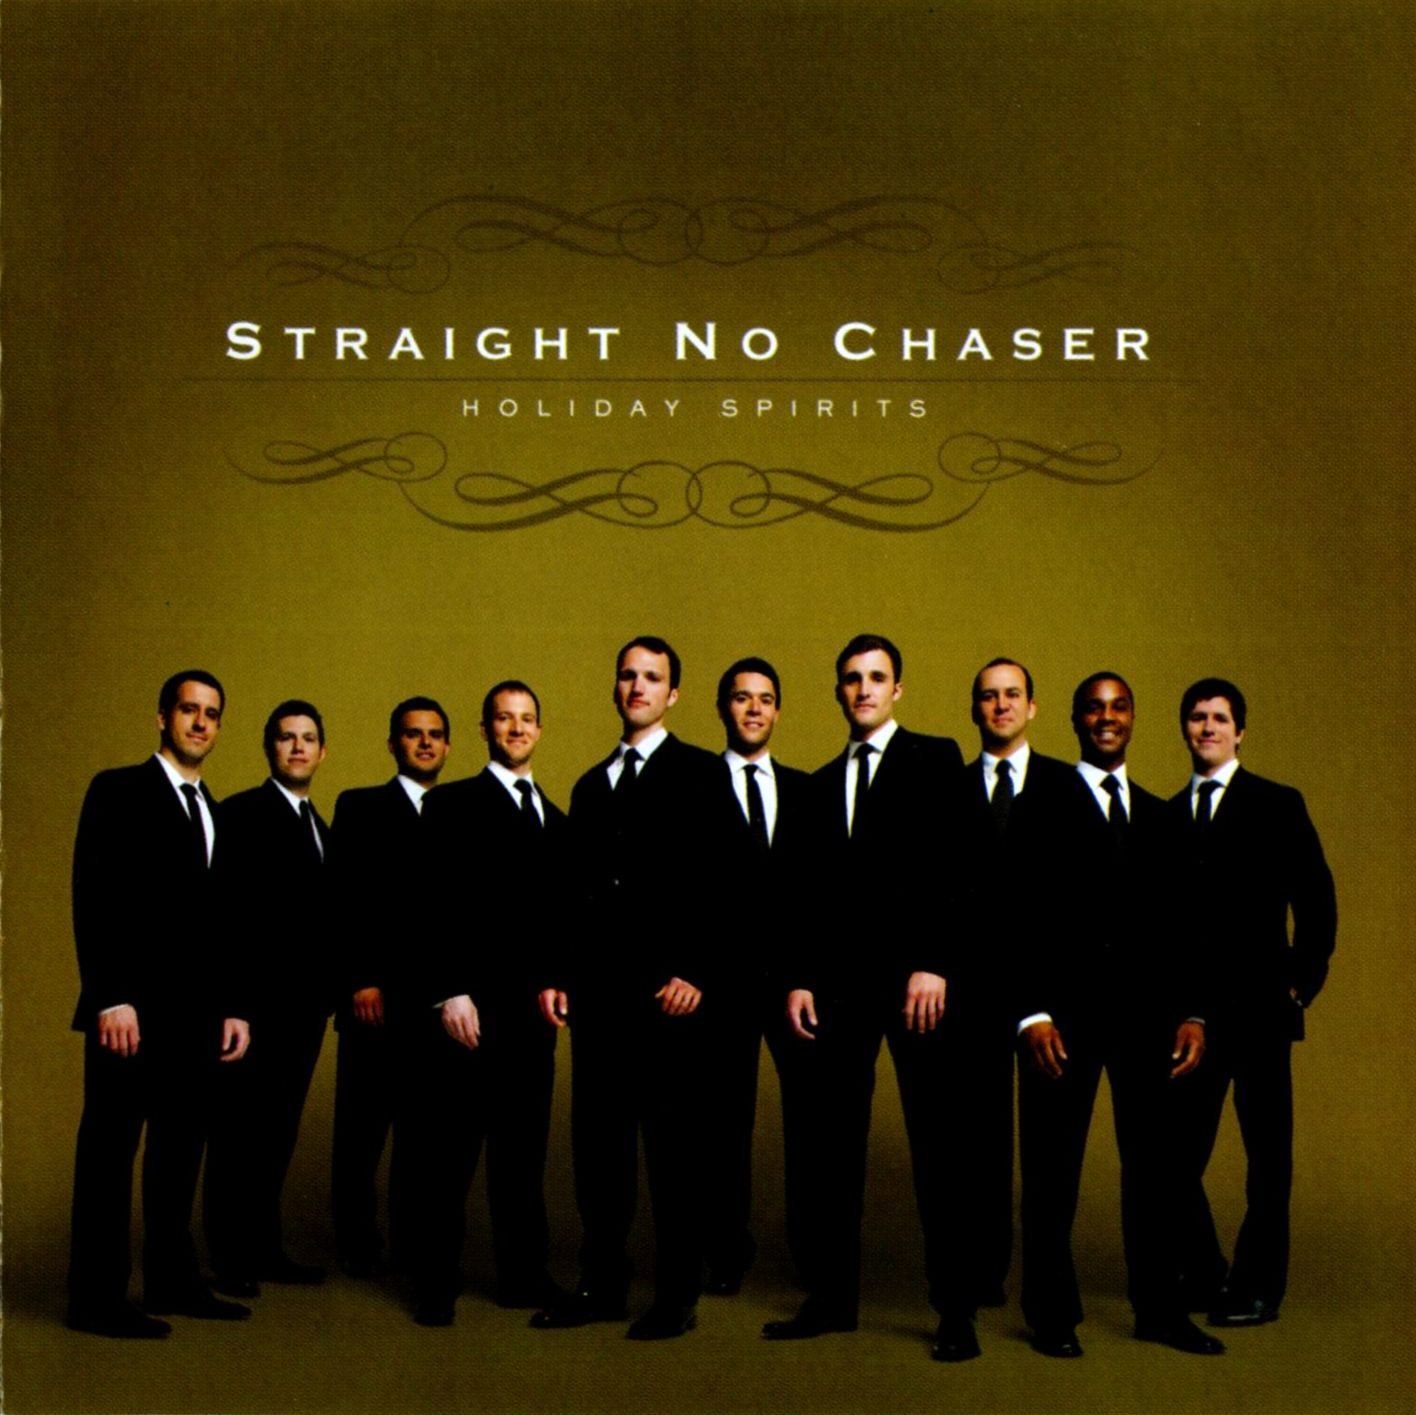 straight no chaser 12 days of christmas - 12 Days Of Christmas By Straight No Chaser